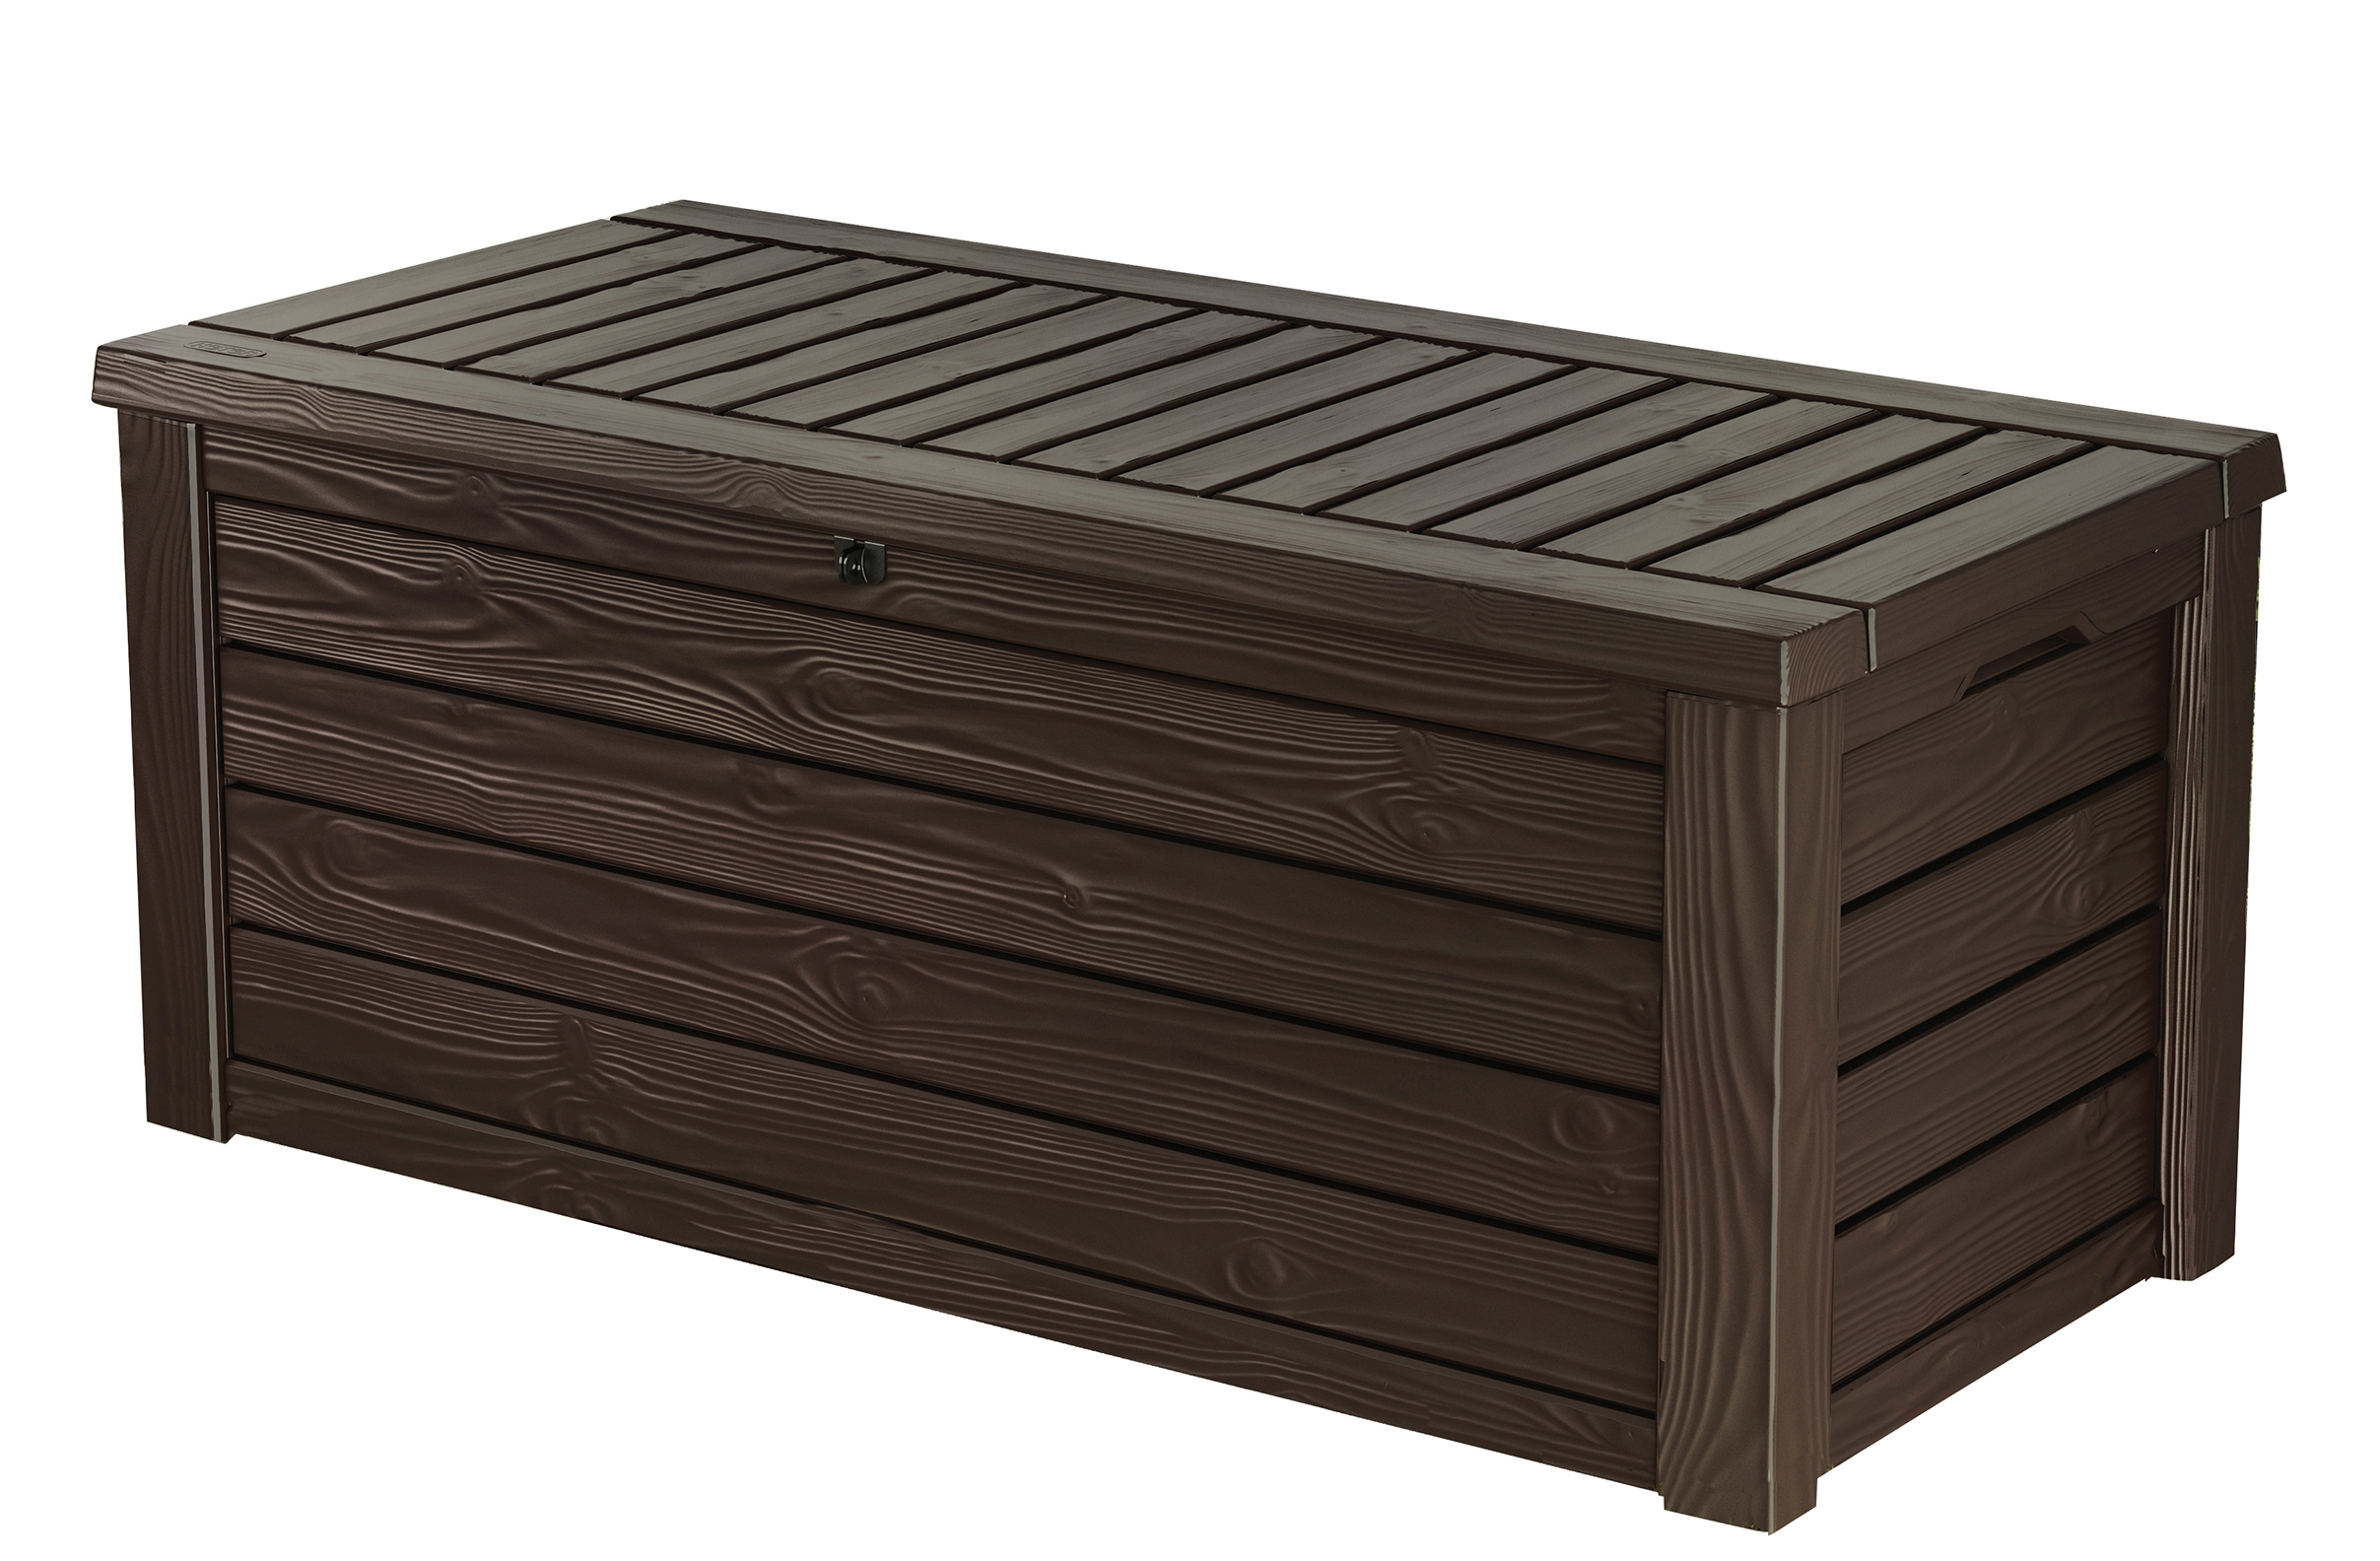 outdoor deck box tall keter westwood 150 gallon resin outdoor deck boxstorage bench